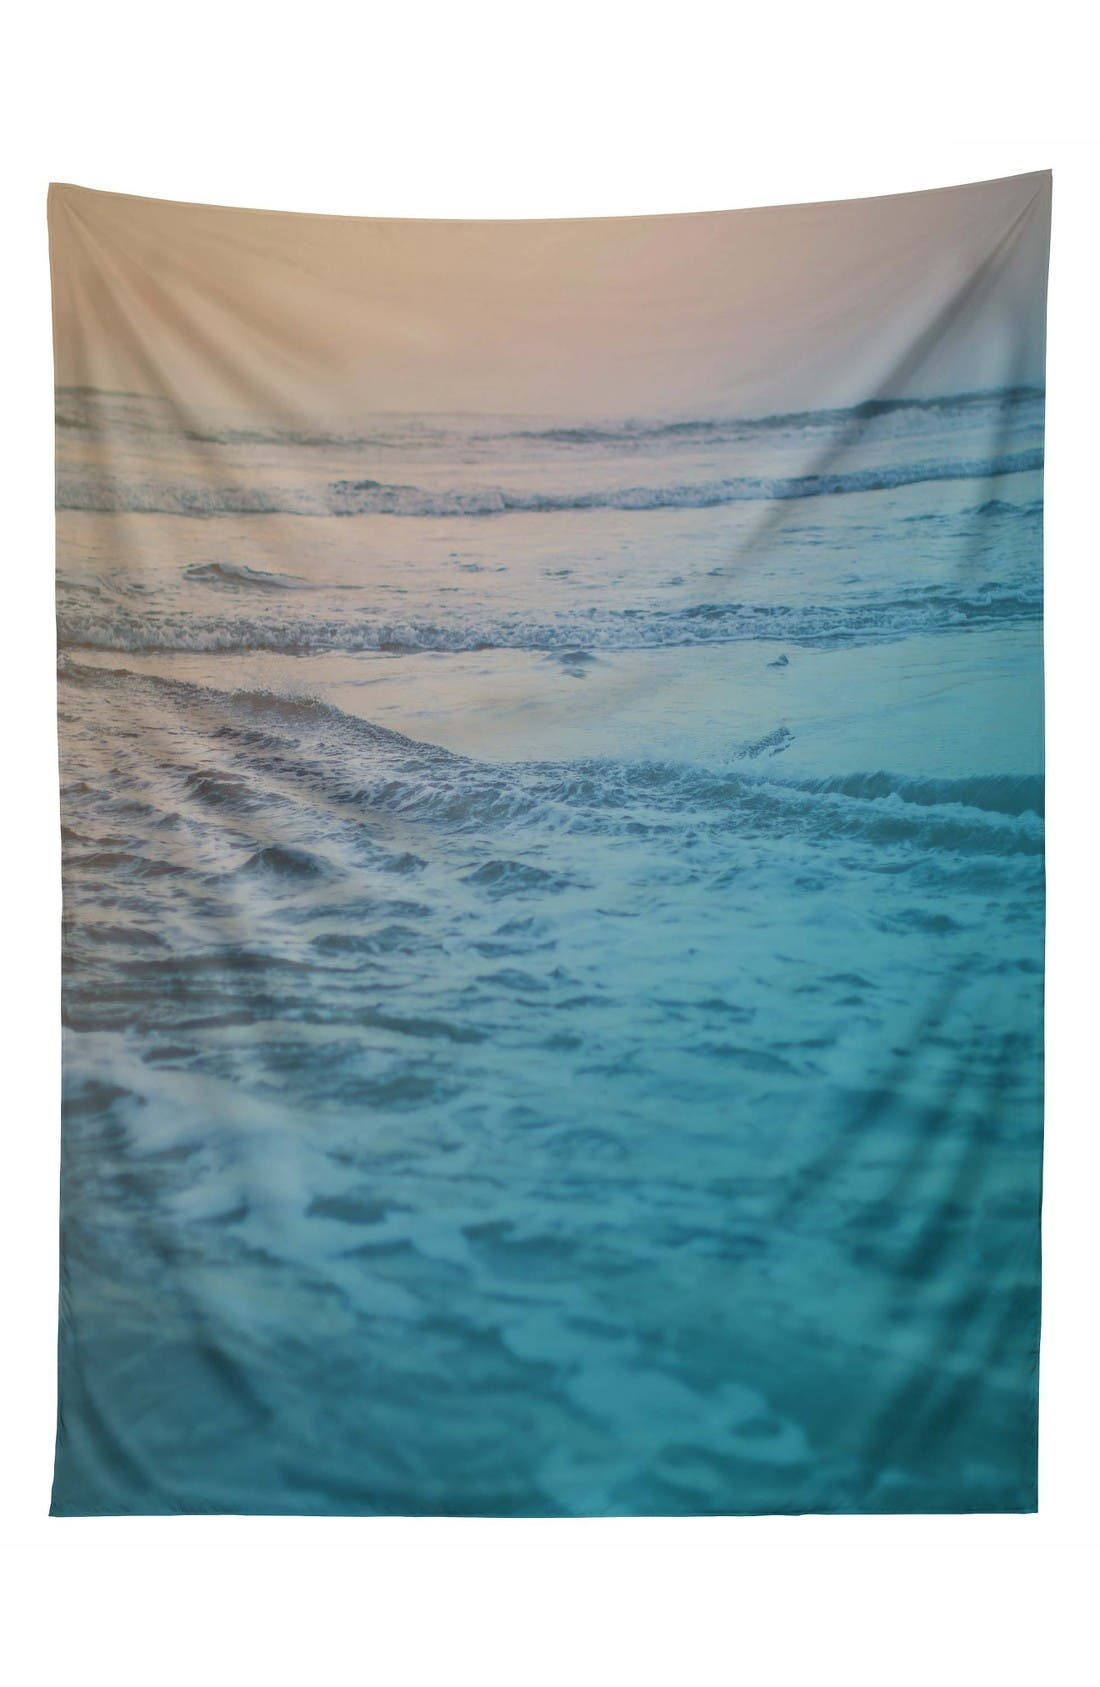 Cotton Candy Waves Tapestry,                             Main thumbnail 1, color,                             Blue/ Mutli